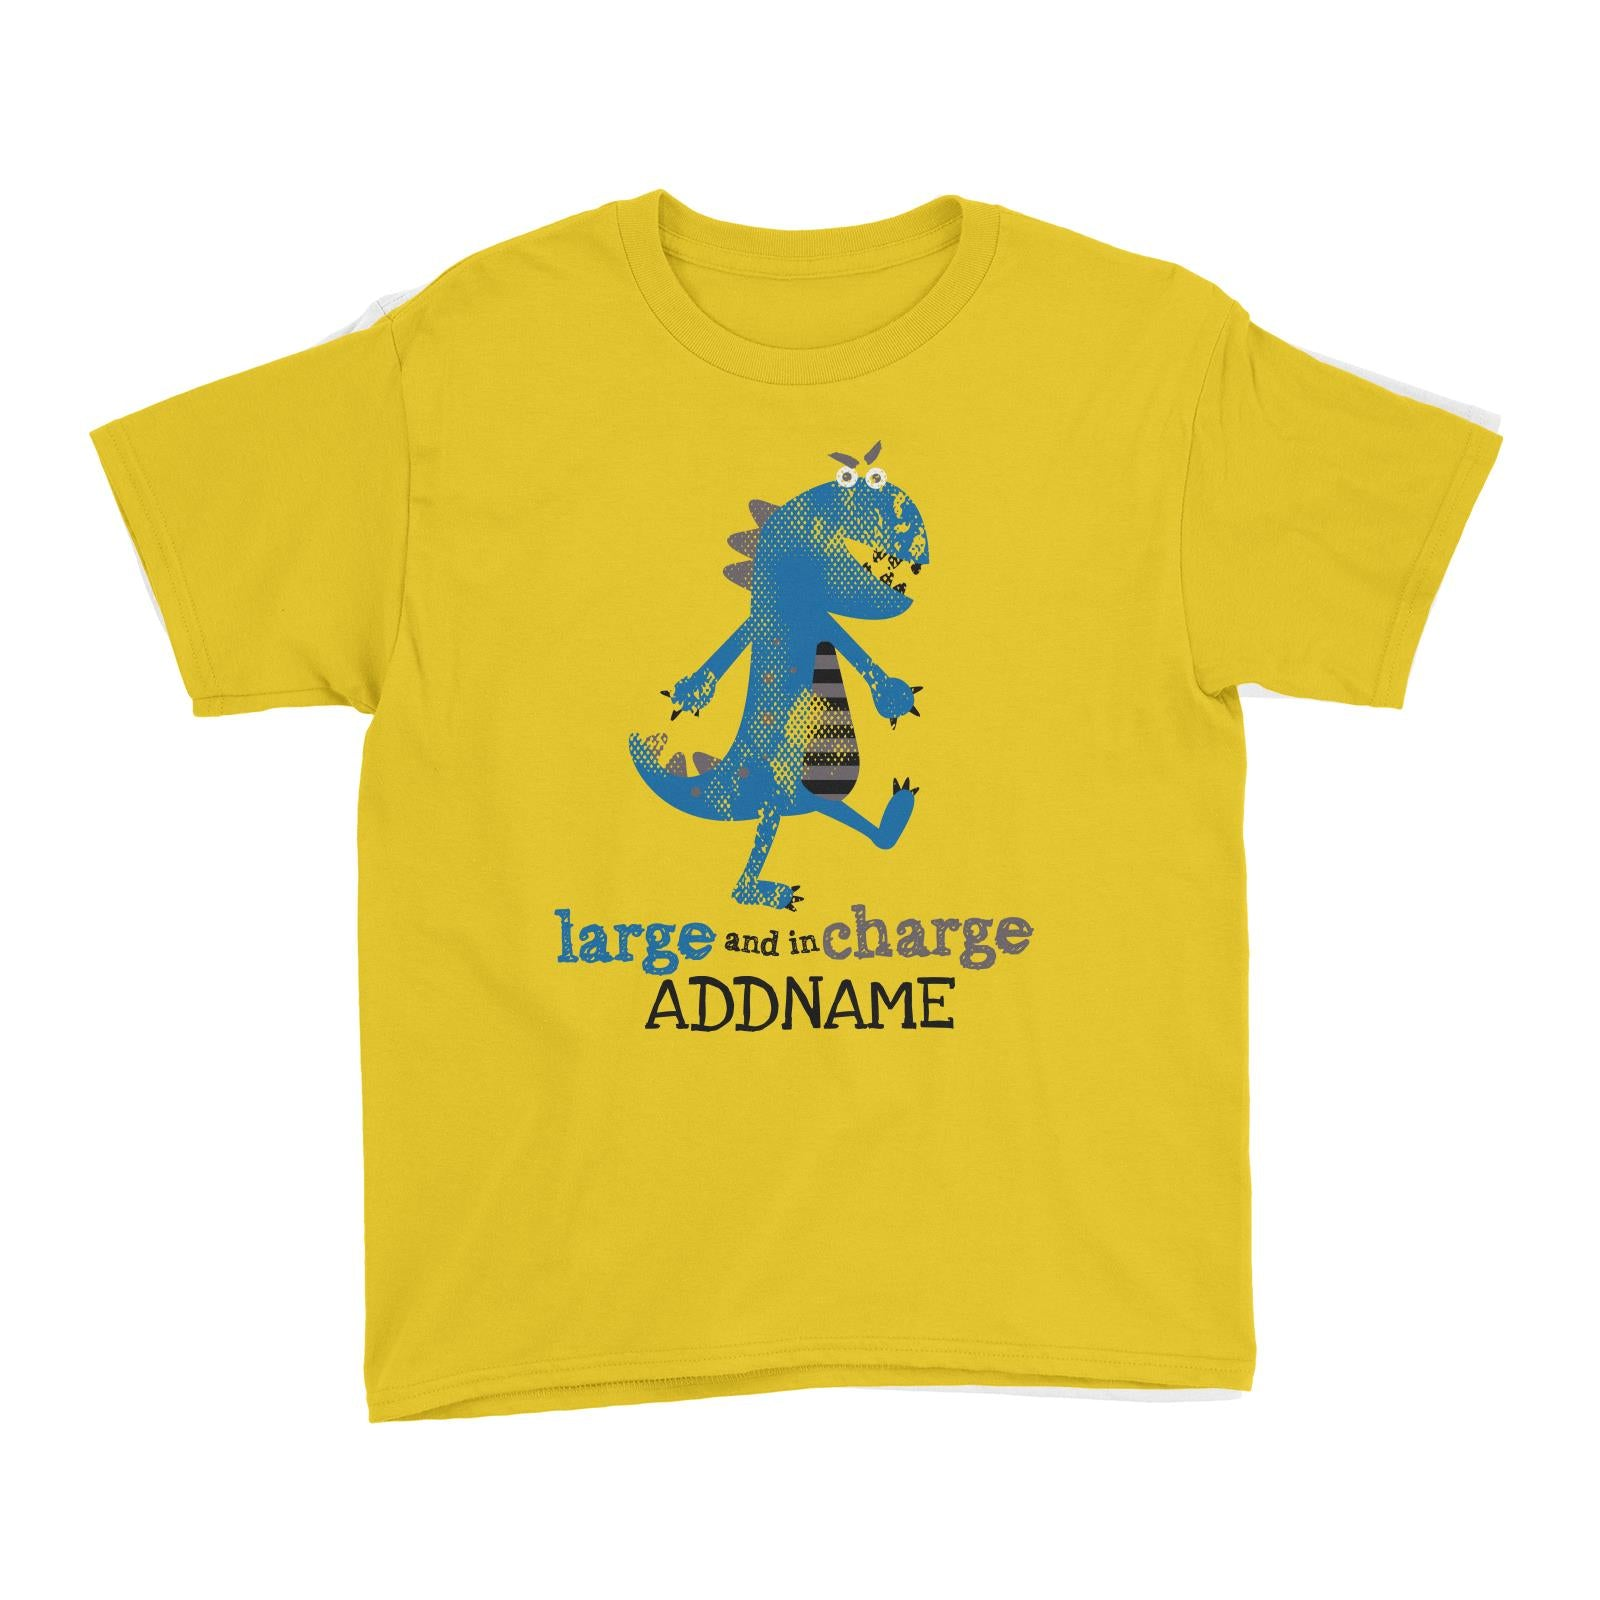 Large and In Charge Dinosaur Addname Kid's T-Shirt